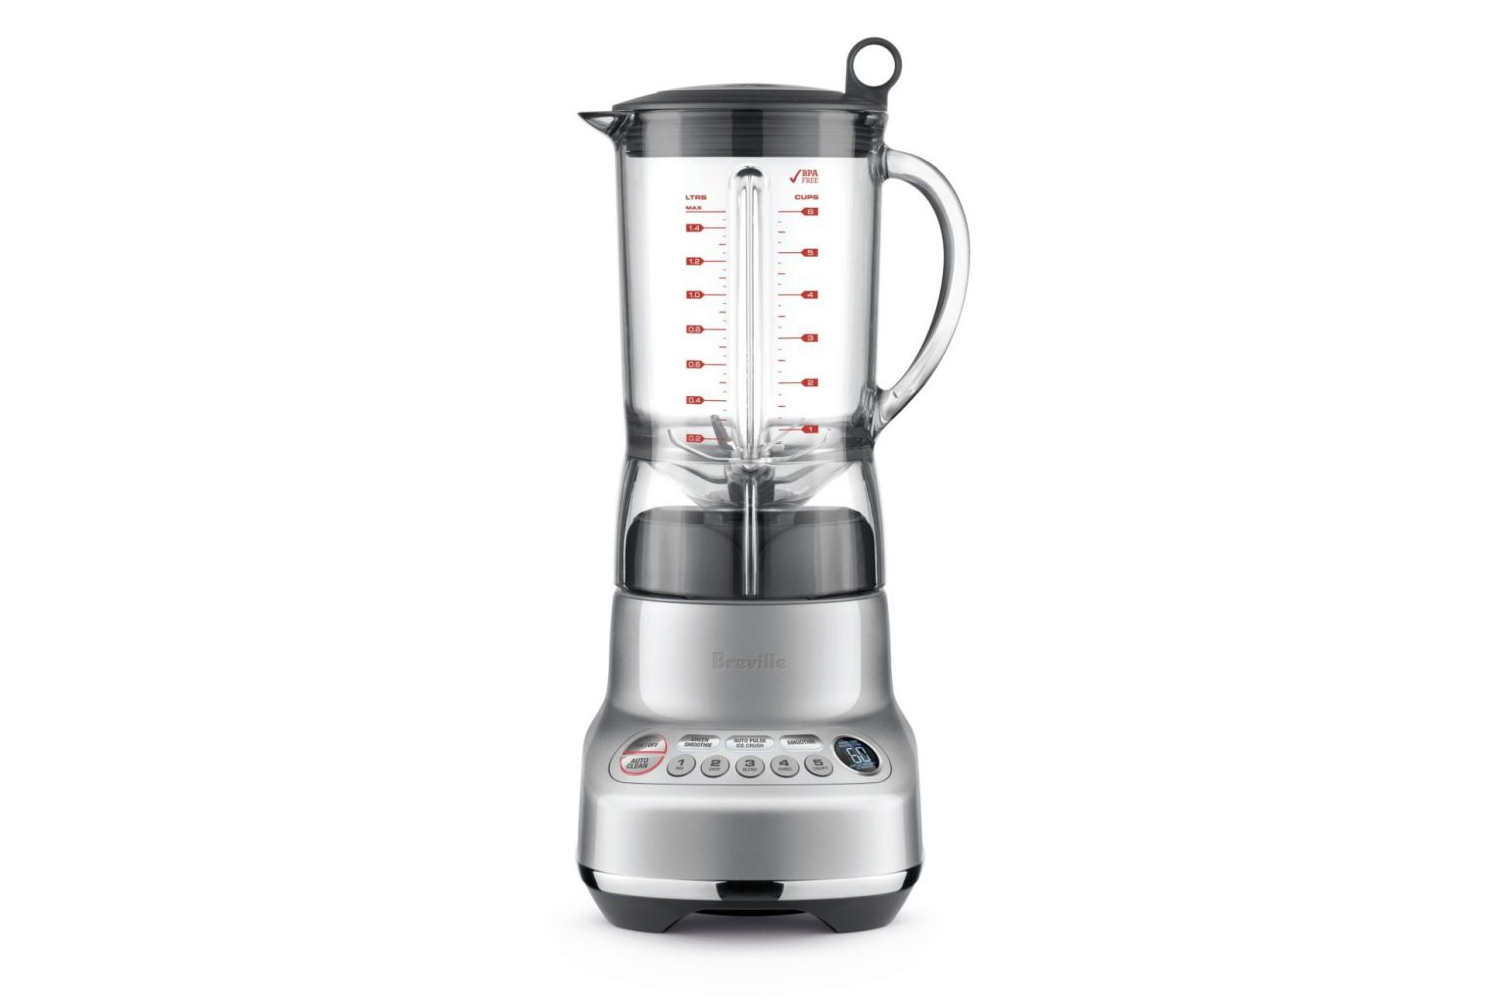 Breville Fresh & Furious 5-Speed Blender